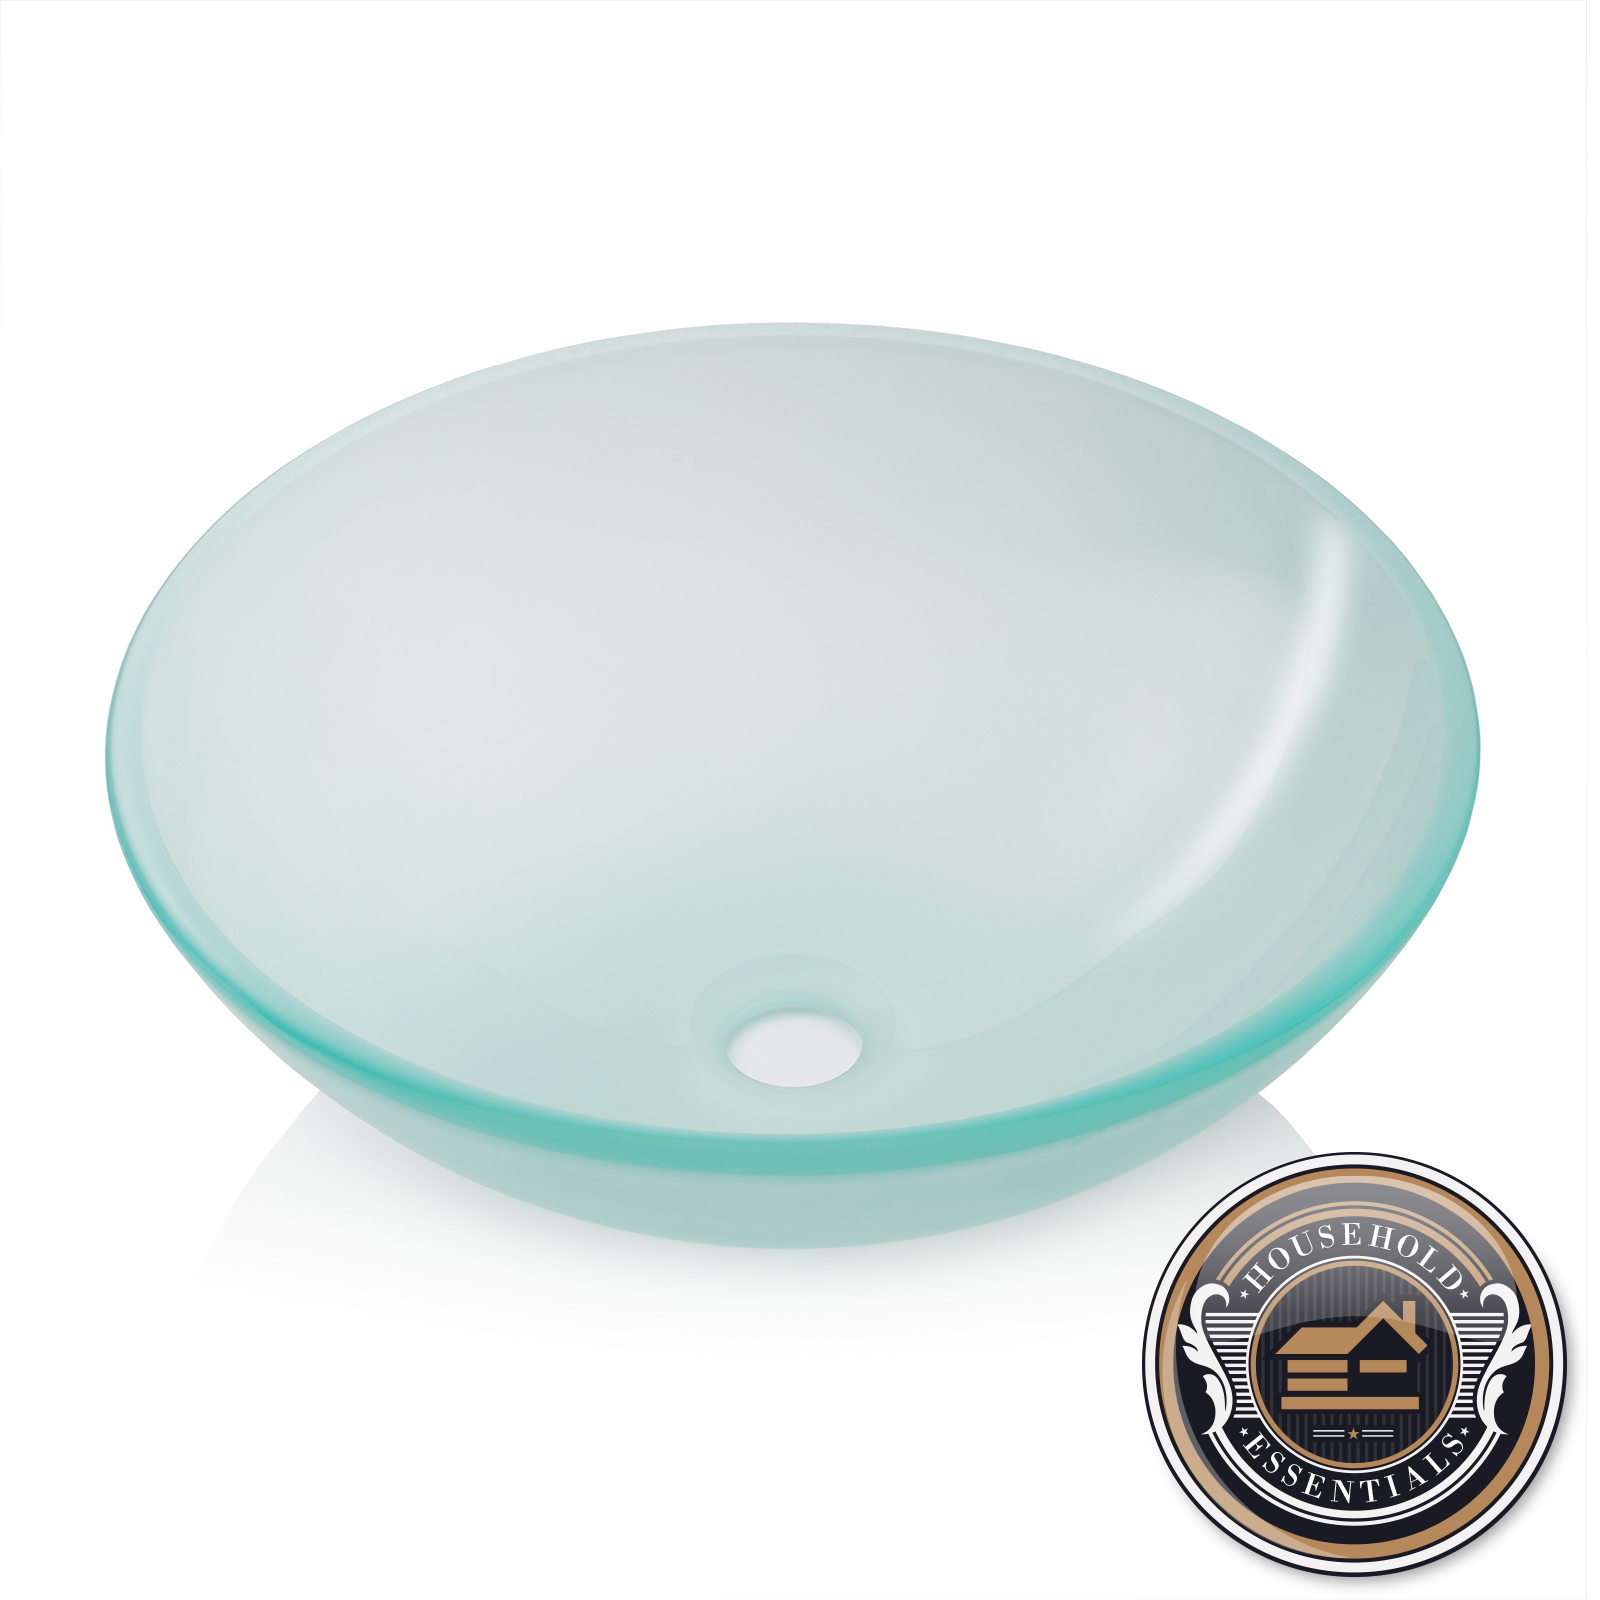 Details About Modern Glass Vessel Sink   Bathroom Vanity Bowl   Round  Frosted